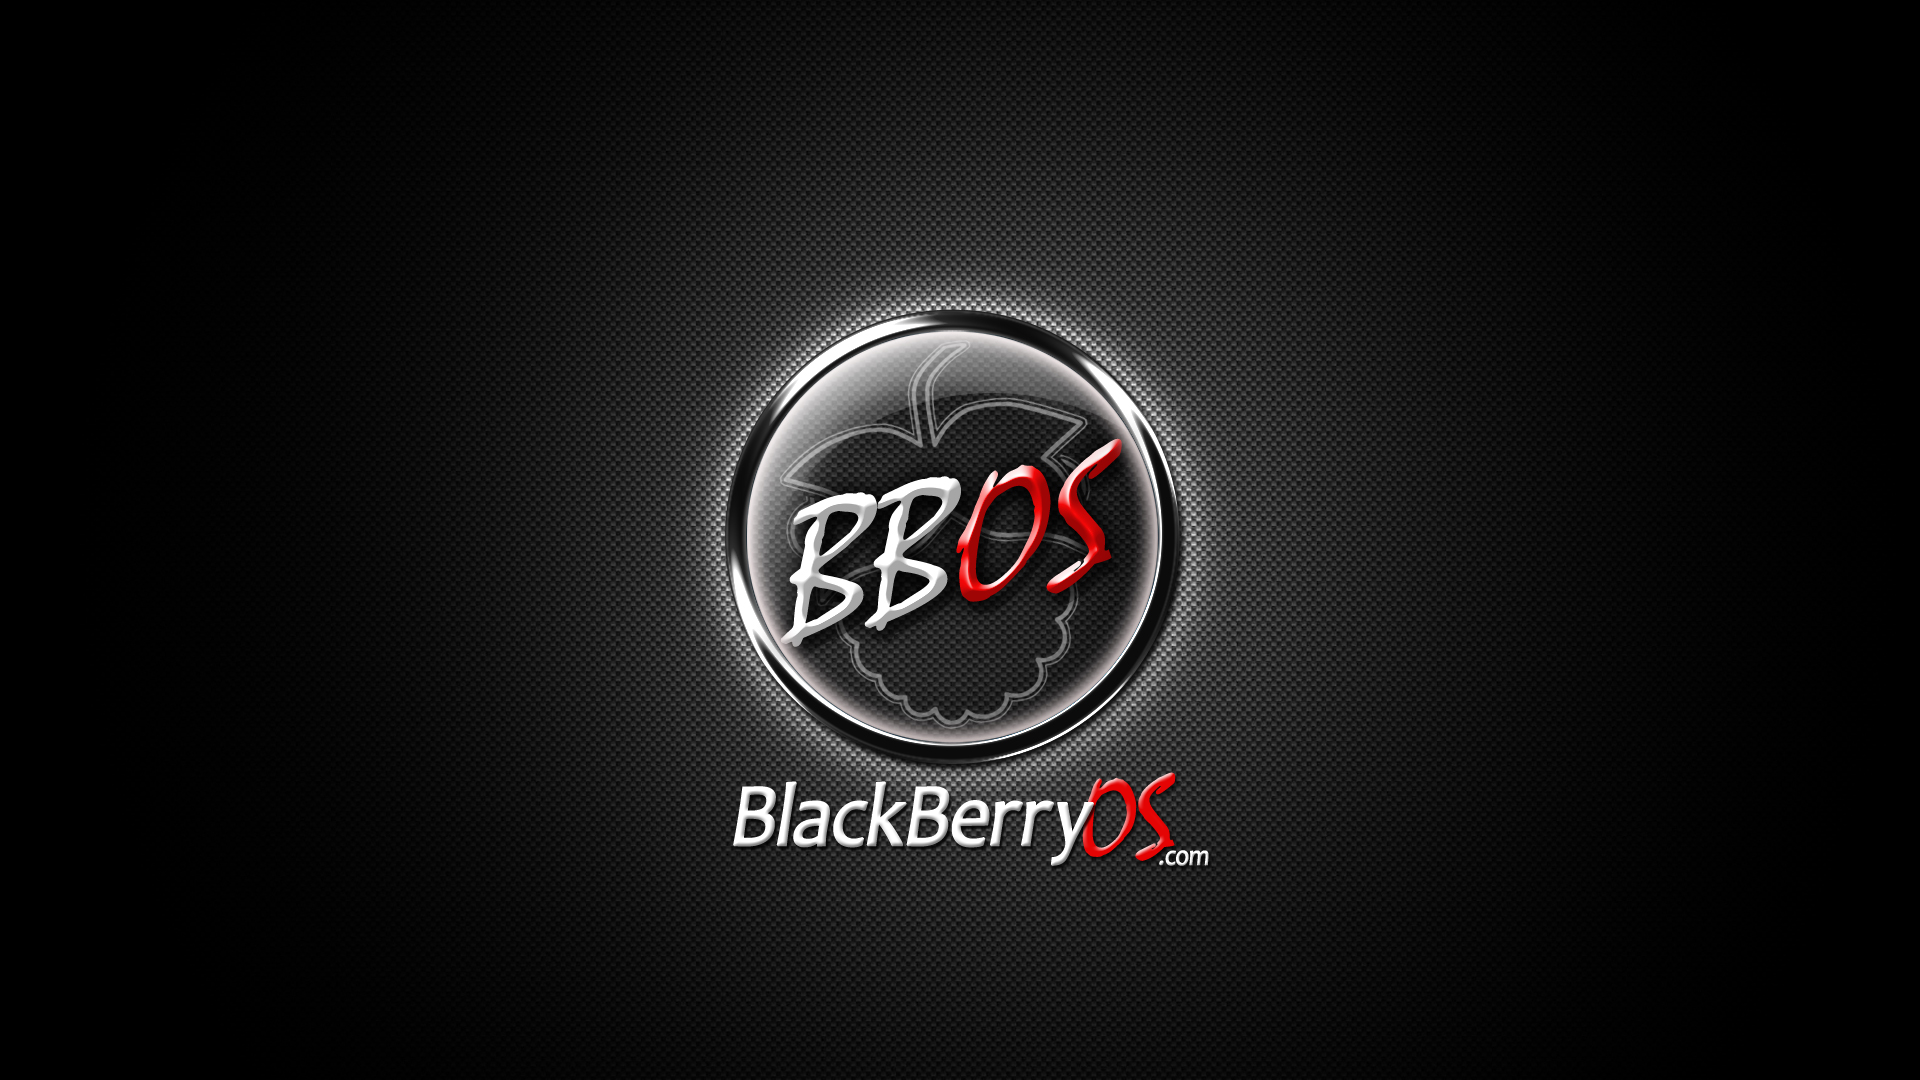 FHDQ Live Blackberry Backgrounds - 39768268, Fallon Leader